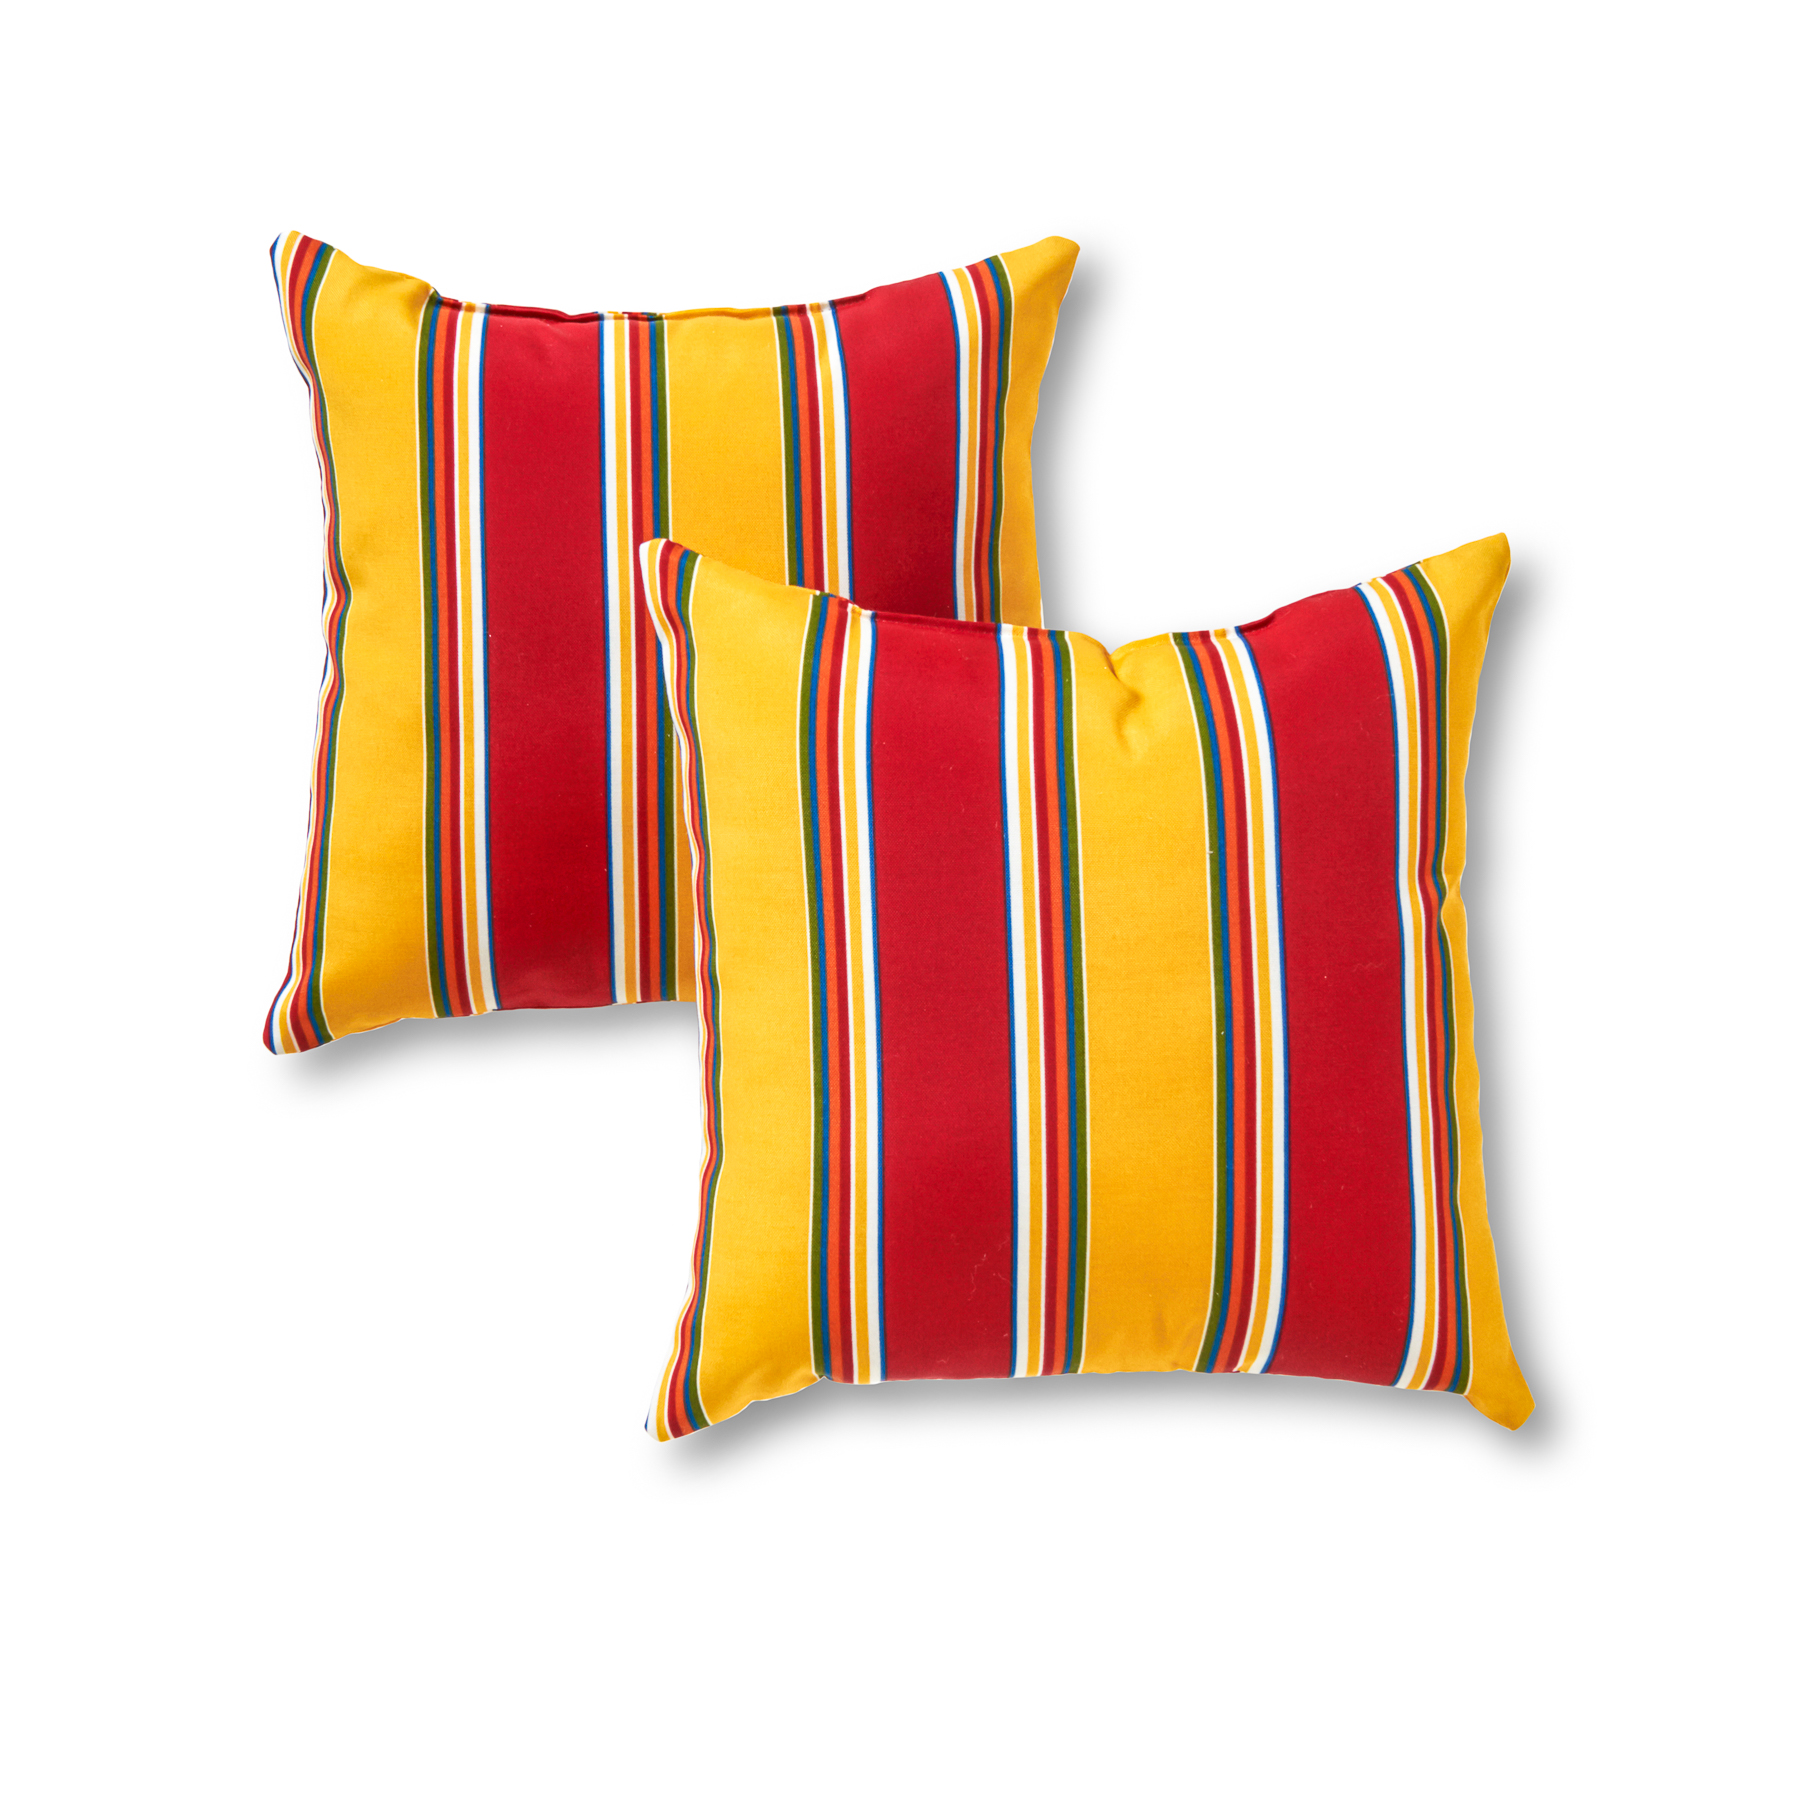 Greendale Home Fashions Carnival Stripe Outdoor Accent Pillow, Set of 2